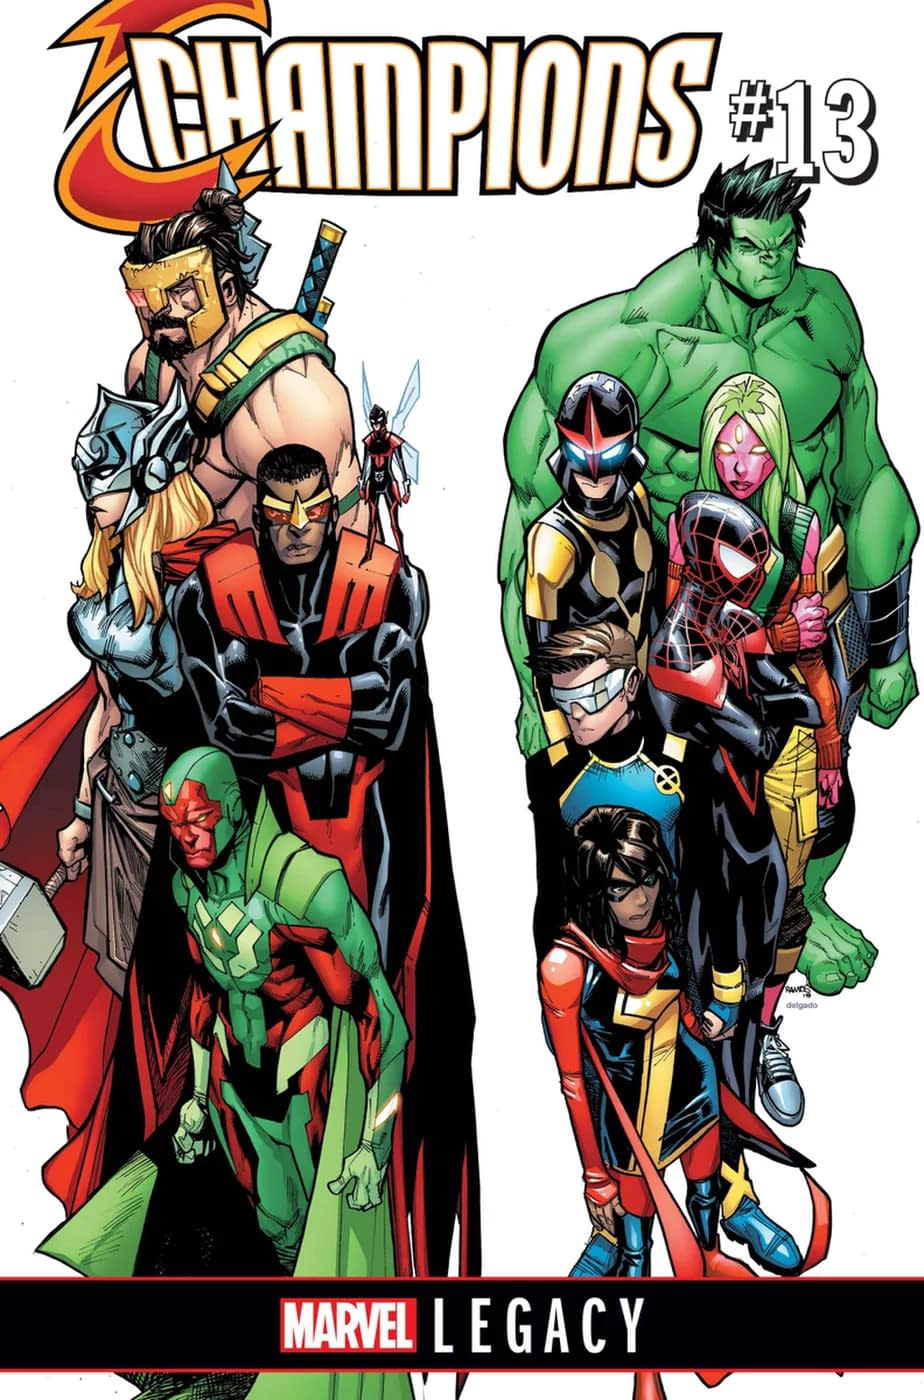 Avengers And Champions Worlds Collide In The Second Crossover Of Marvel Legacy